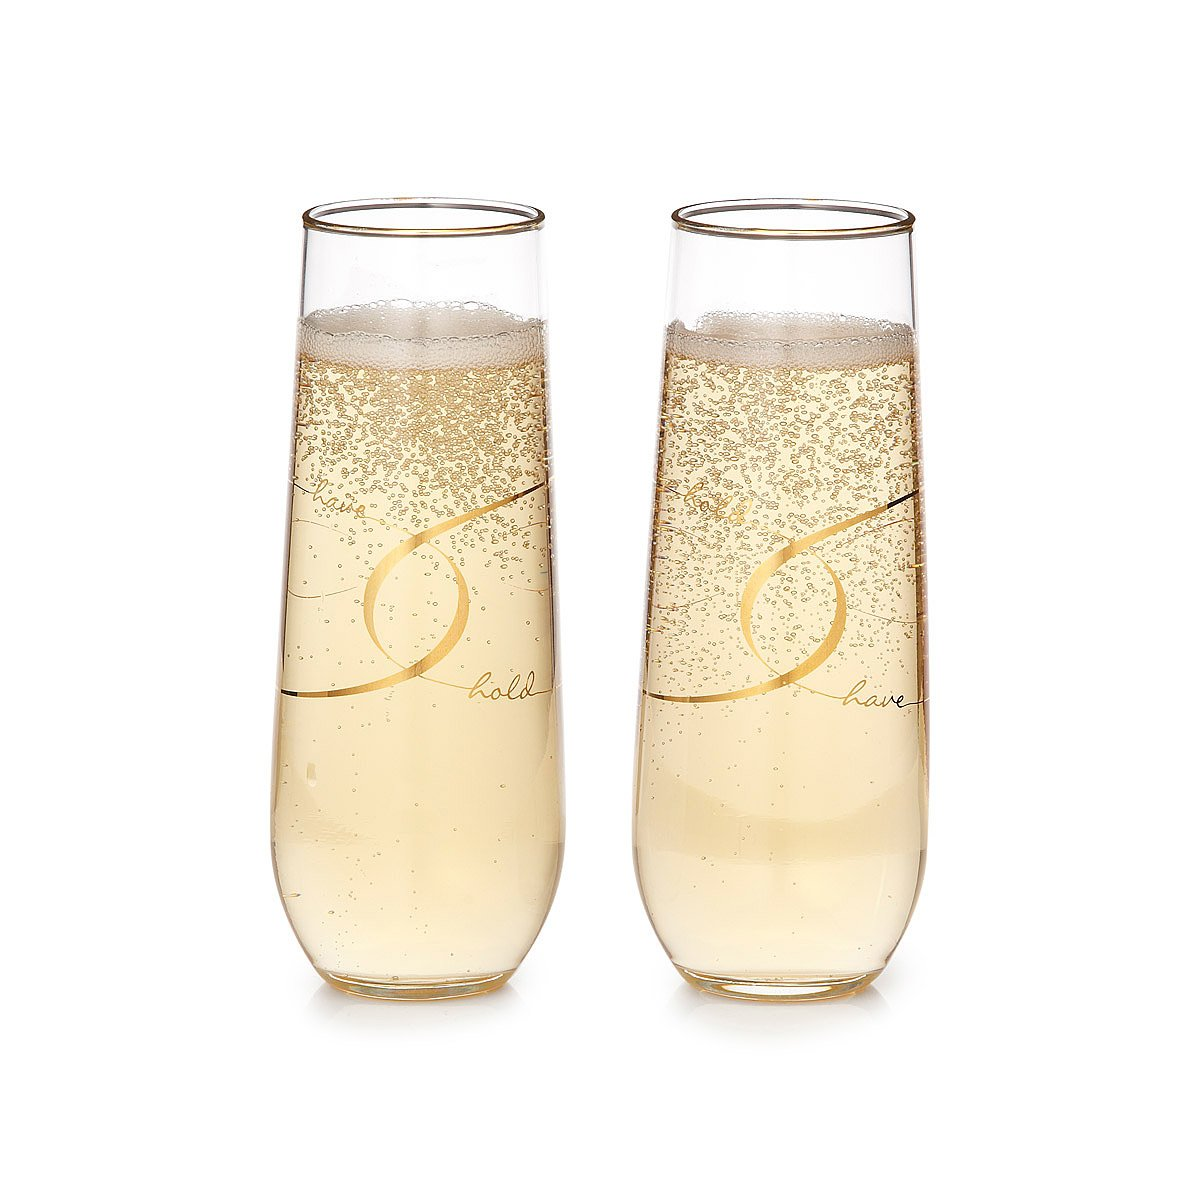 unique champagne flutes modern champagne glasses  uncommongoods - have  hold stemless champagne flutes  set of